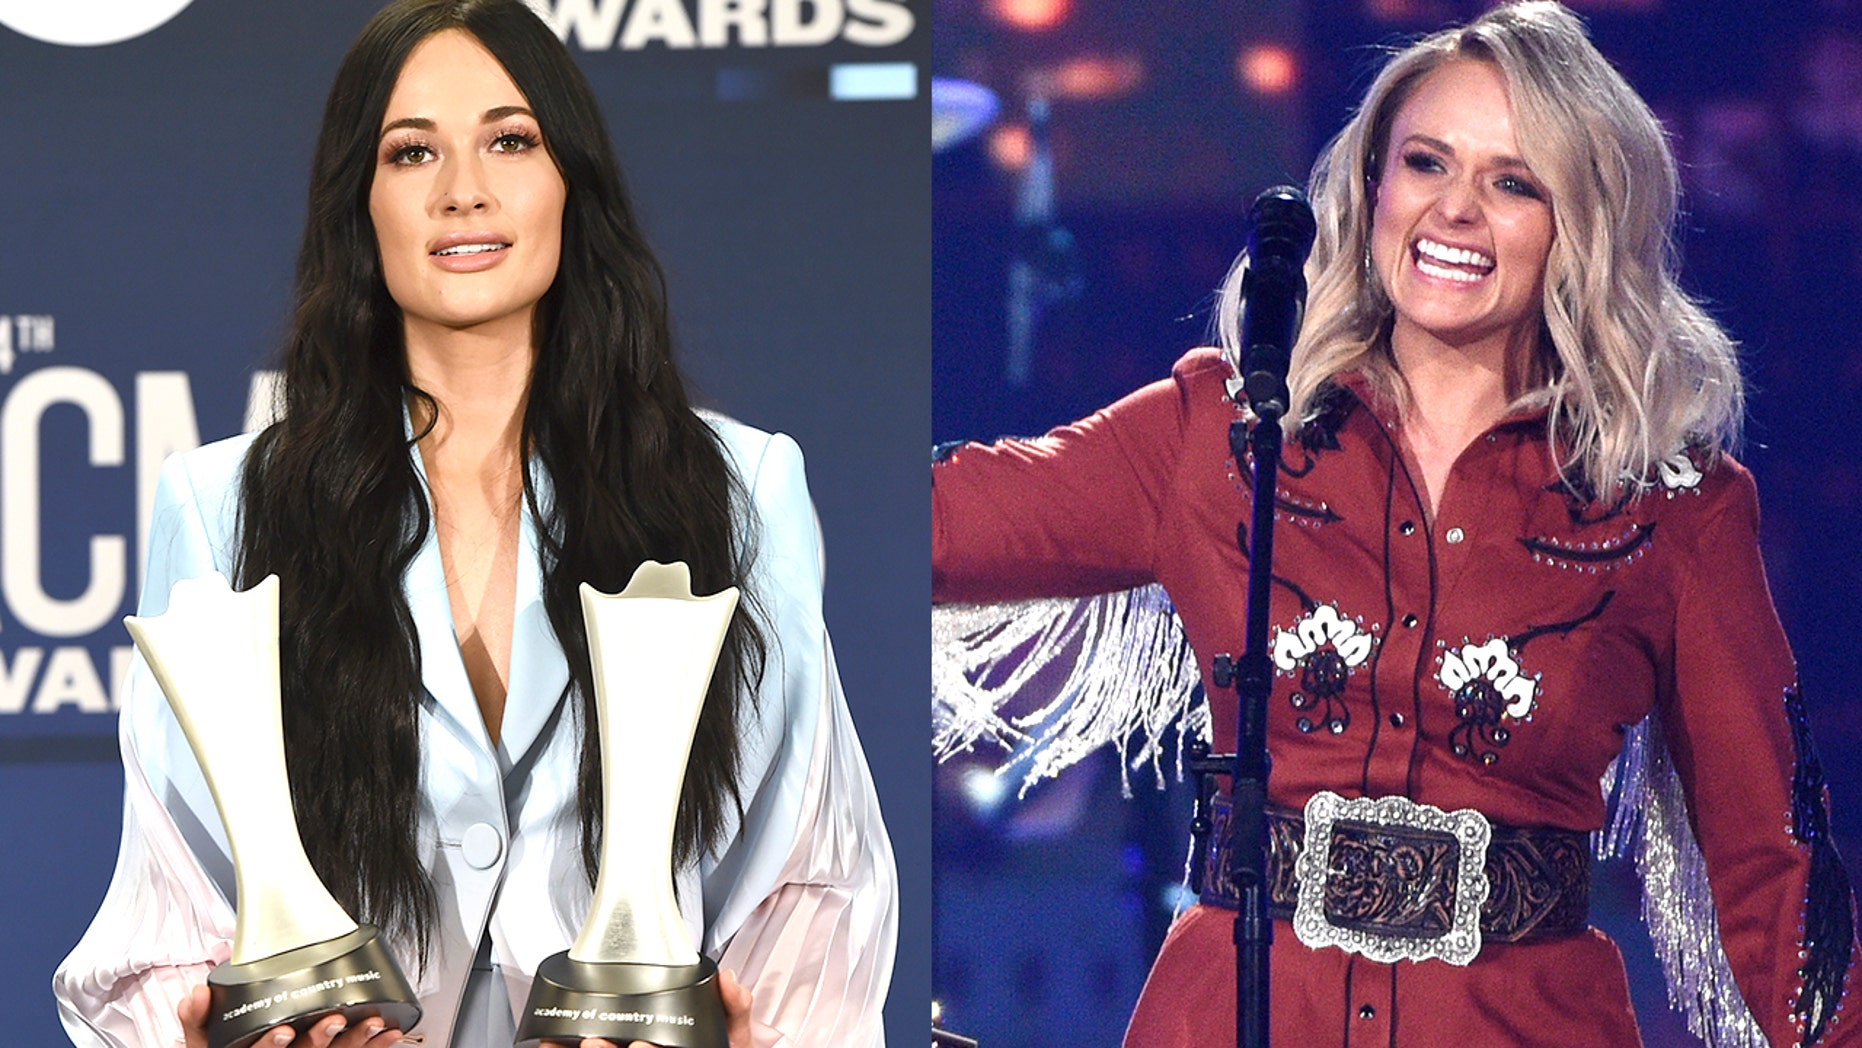 Kacey Musgraves, left, won female vocalist of the year at the 2019 ACM Awards, putting an end to Miranda Lambert's, right, 9-year winning streak.